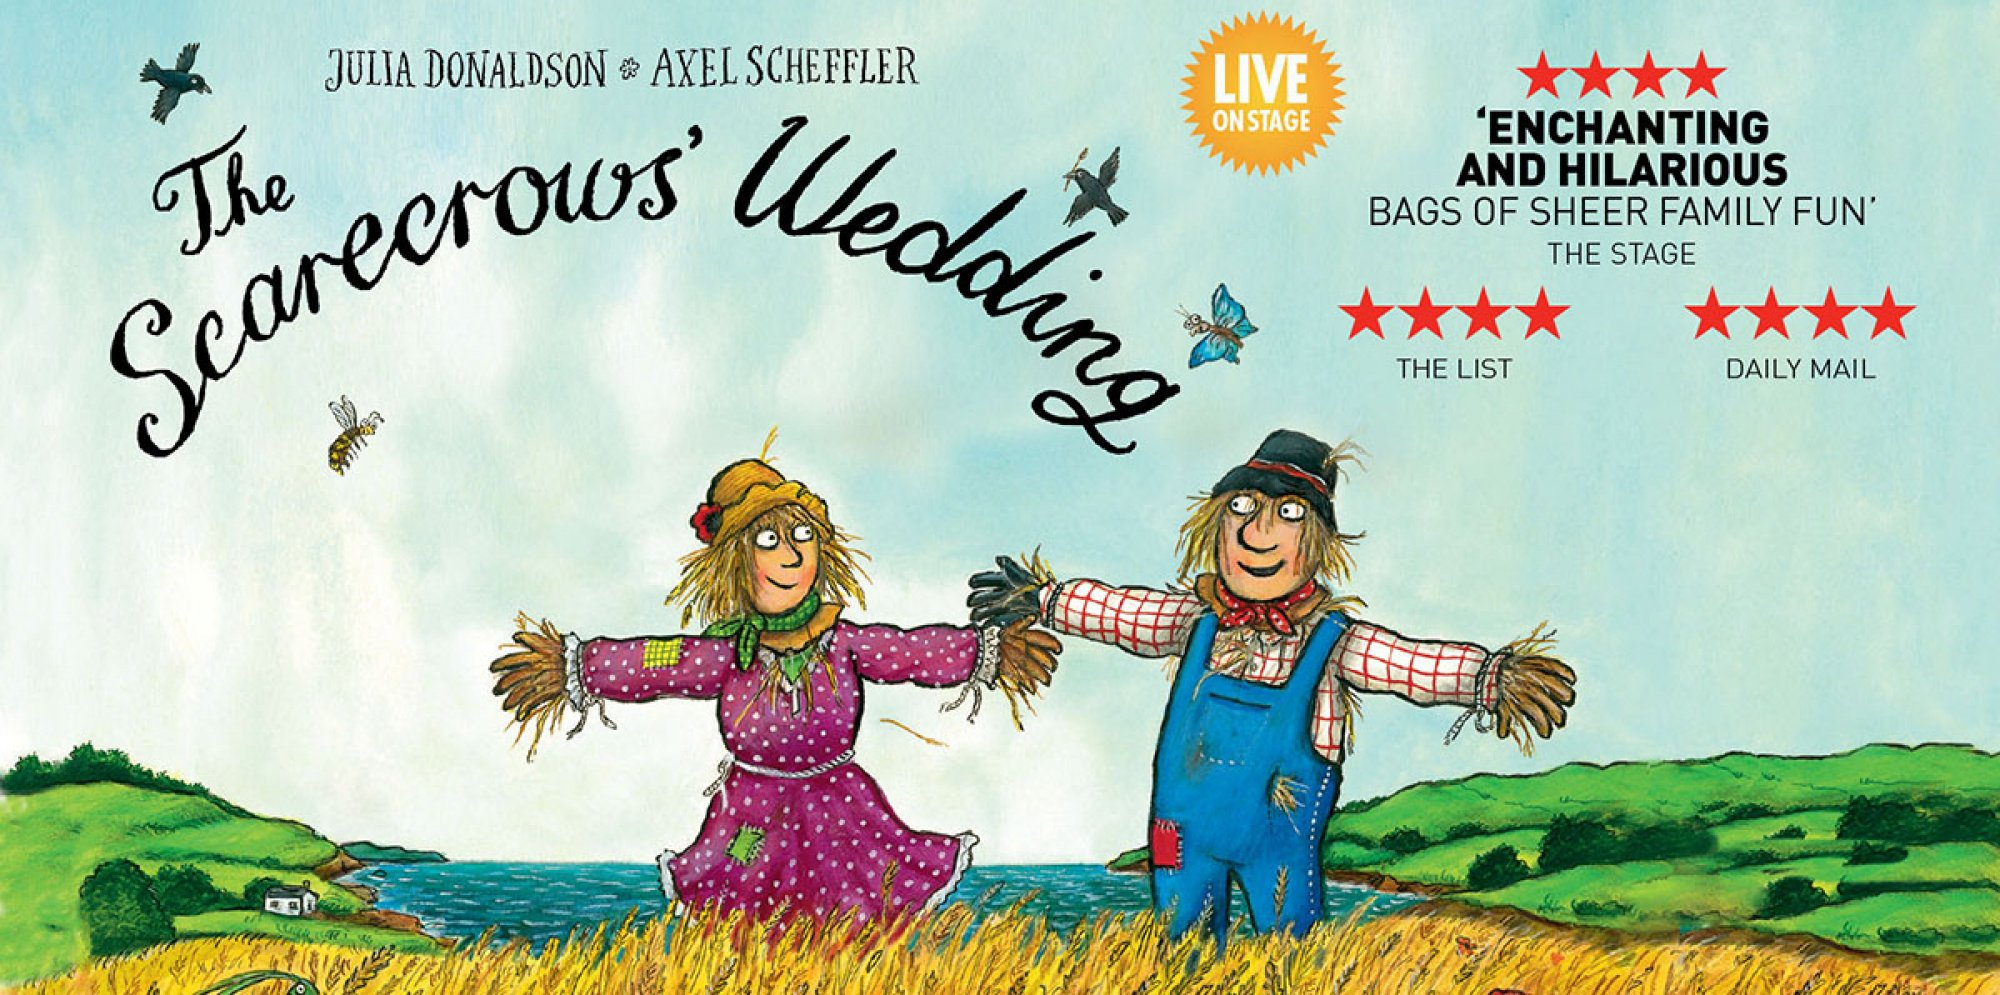 The Scarecrows' Wedding: a male and a female scarecrow stand on a field and smile at each other